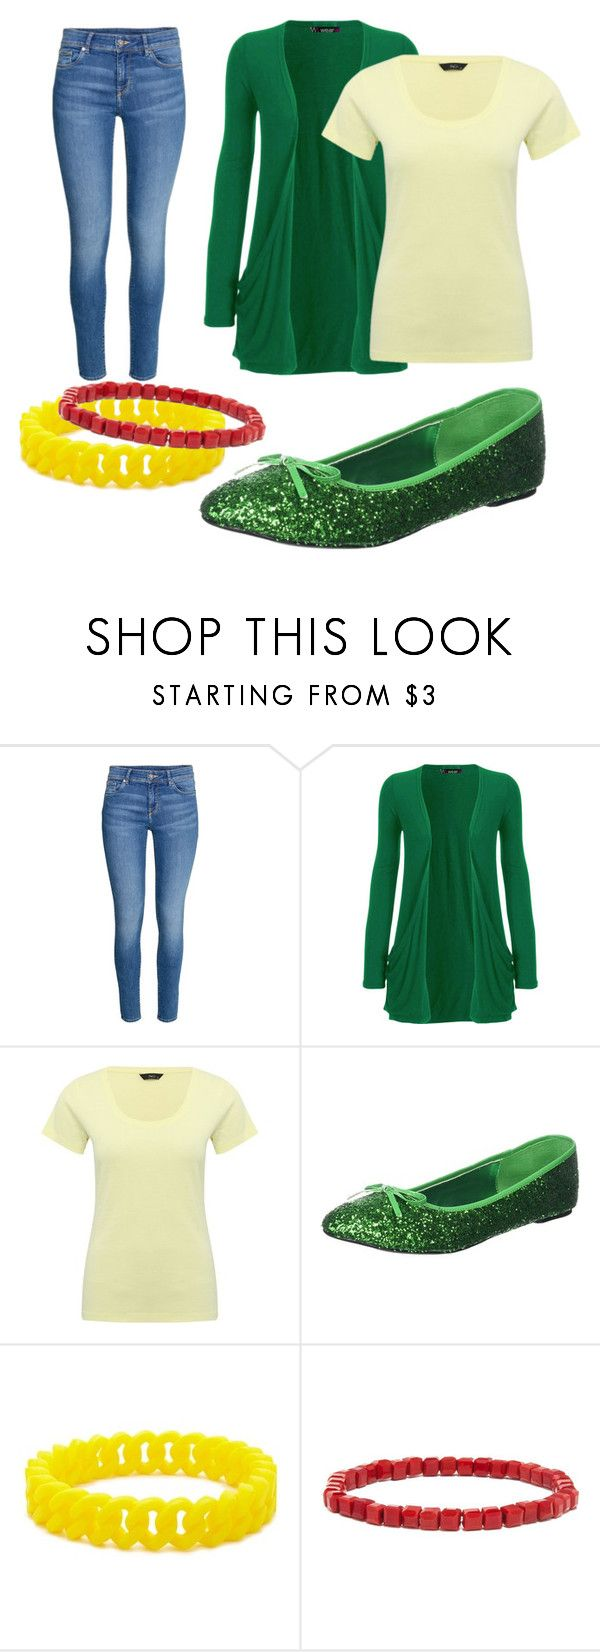 """""""Diamond Lil - Nolan"""" by dawn-currie-adams on Polyvore featuring WearAll, M&Co, Pleaser, Forever 21 and BaubleBar"""